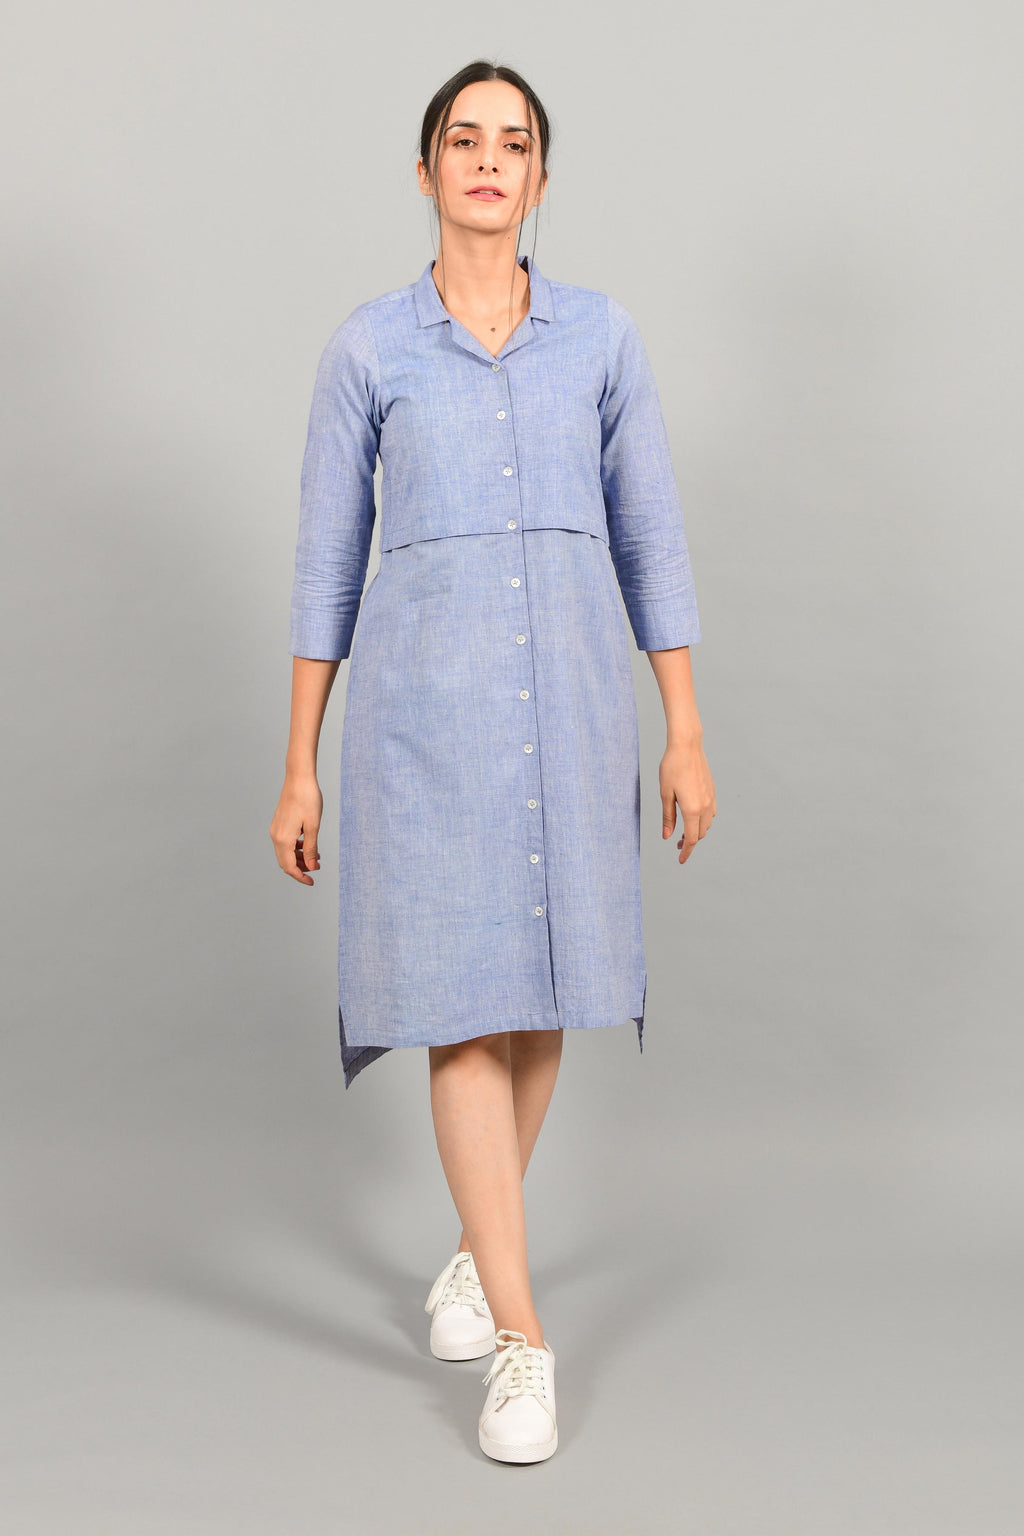 Front pose of an Indian female womenswear fashion model in a blue chambray handspun and handwoven khadi cotton shirt dress by Cotton Rack.